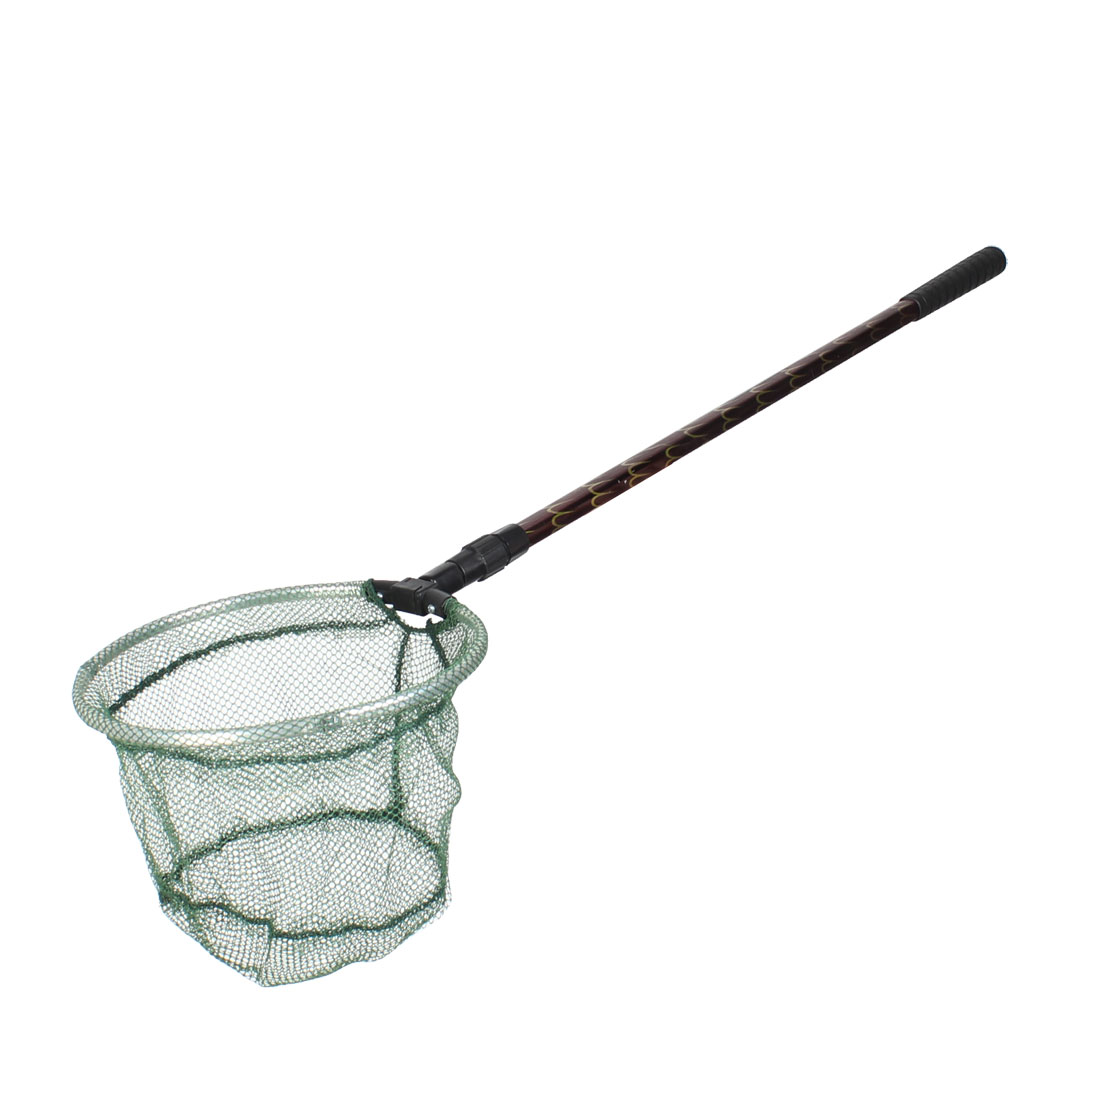 1.2M 2 Section Handle Round Frame Army Green Dipnet Fishing Landing Net